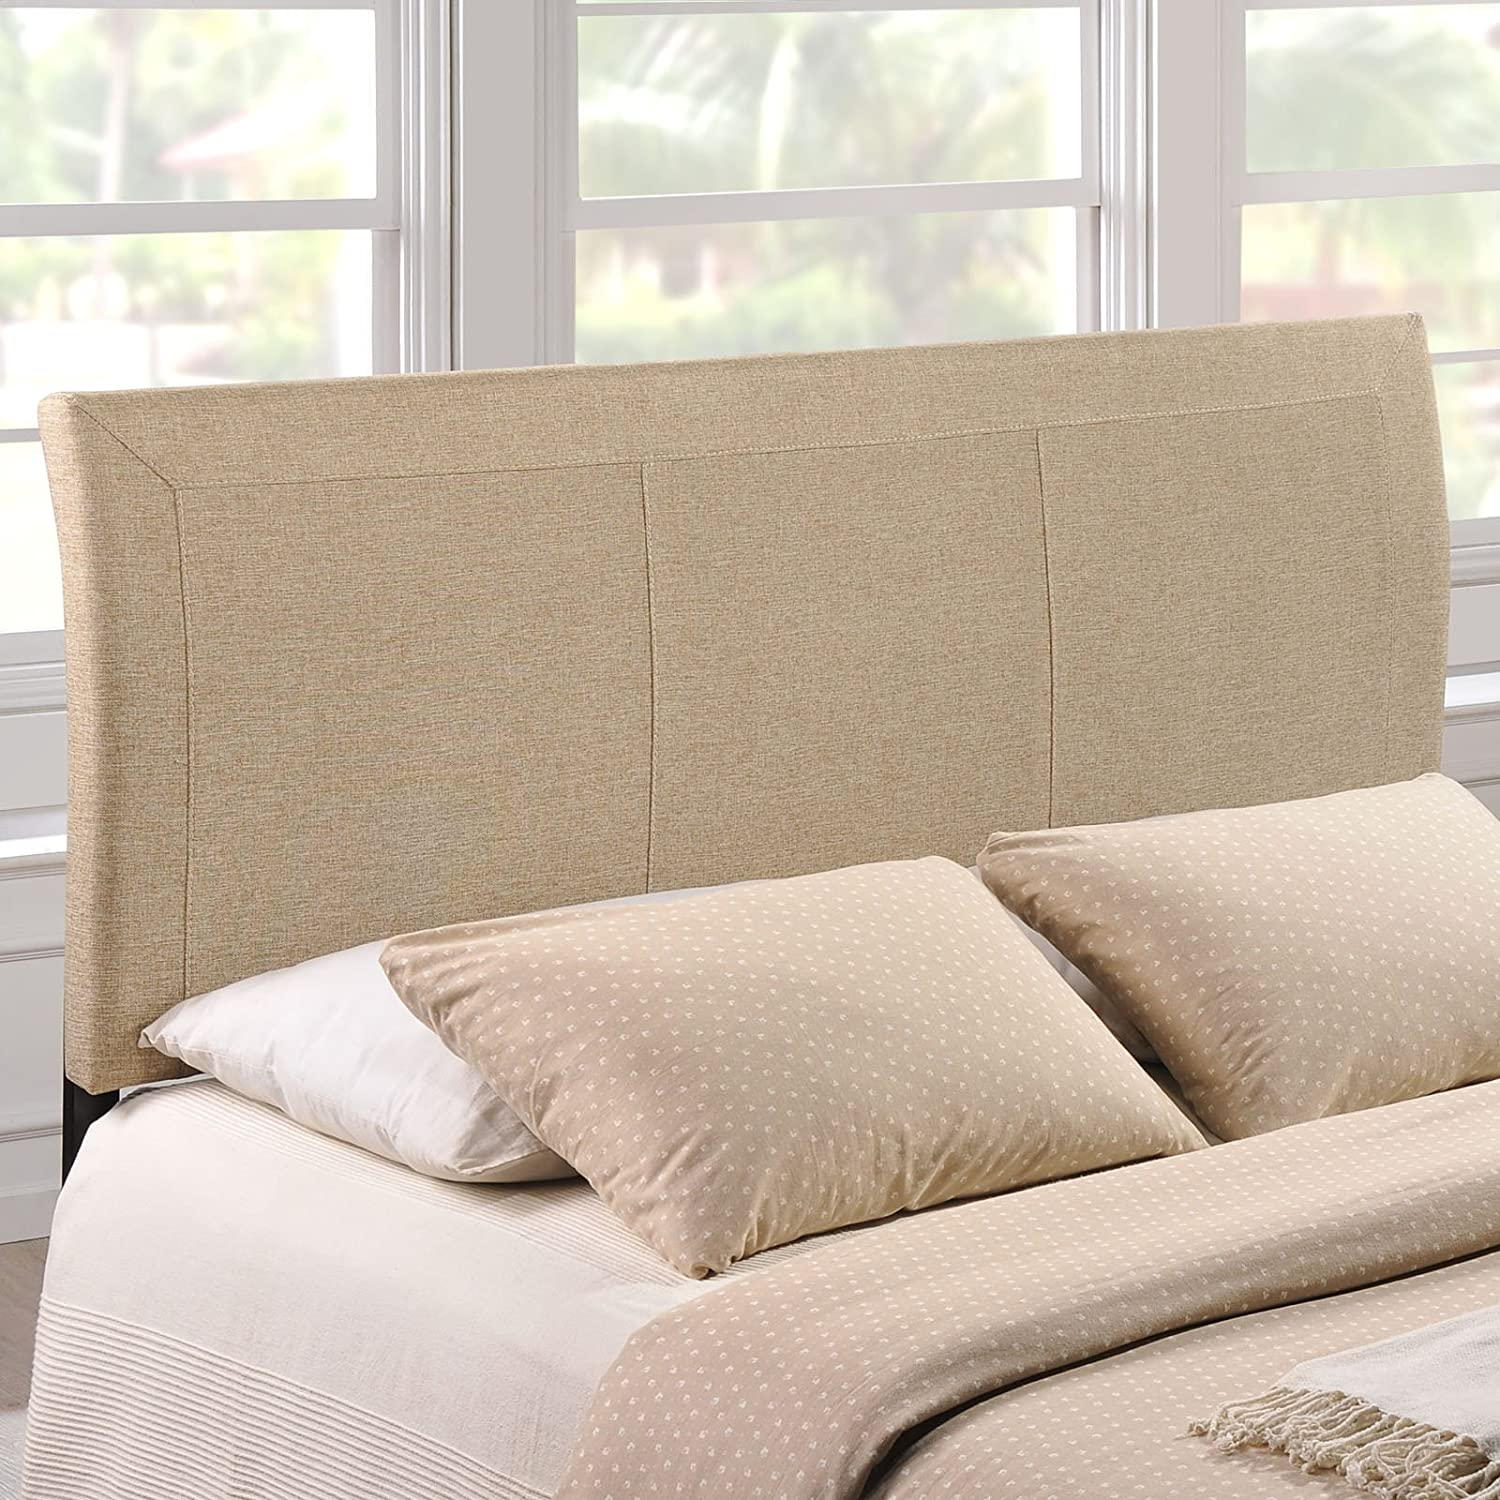 Amazon.com   Modway Isabella Upholstered Fabric Headboard   Queen Size In  Beige